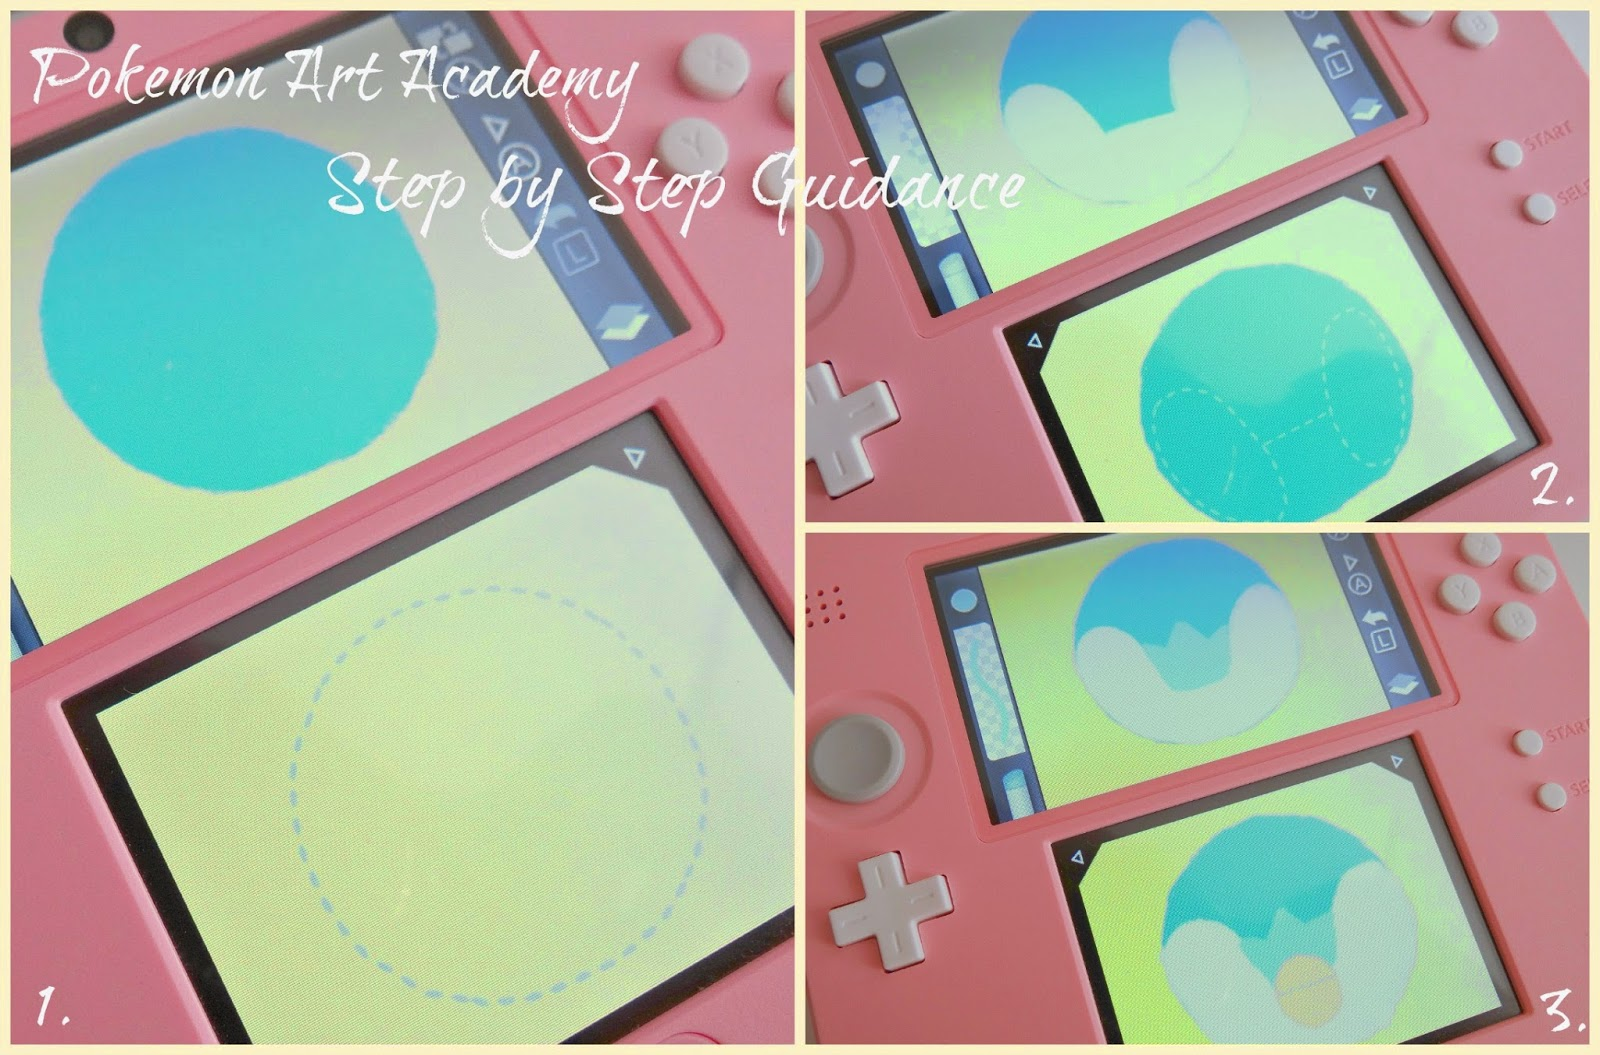 Pokemon Art Academy 3DS, Pink and White 2DS, drawing software tutorial